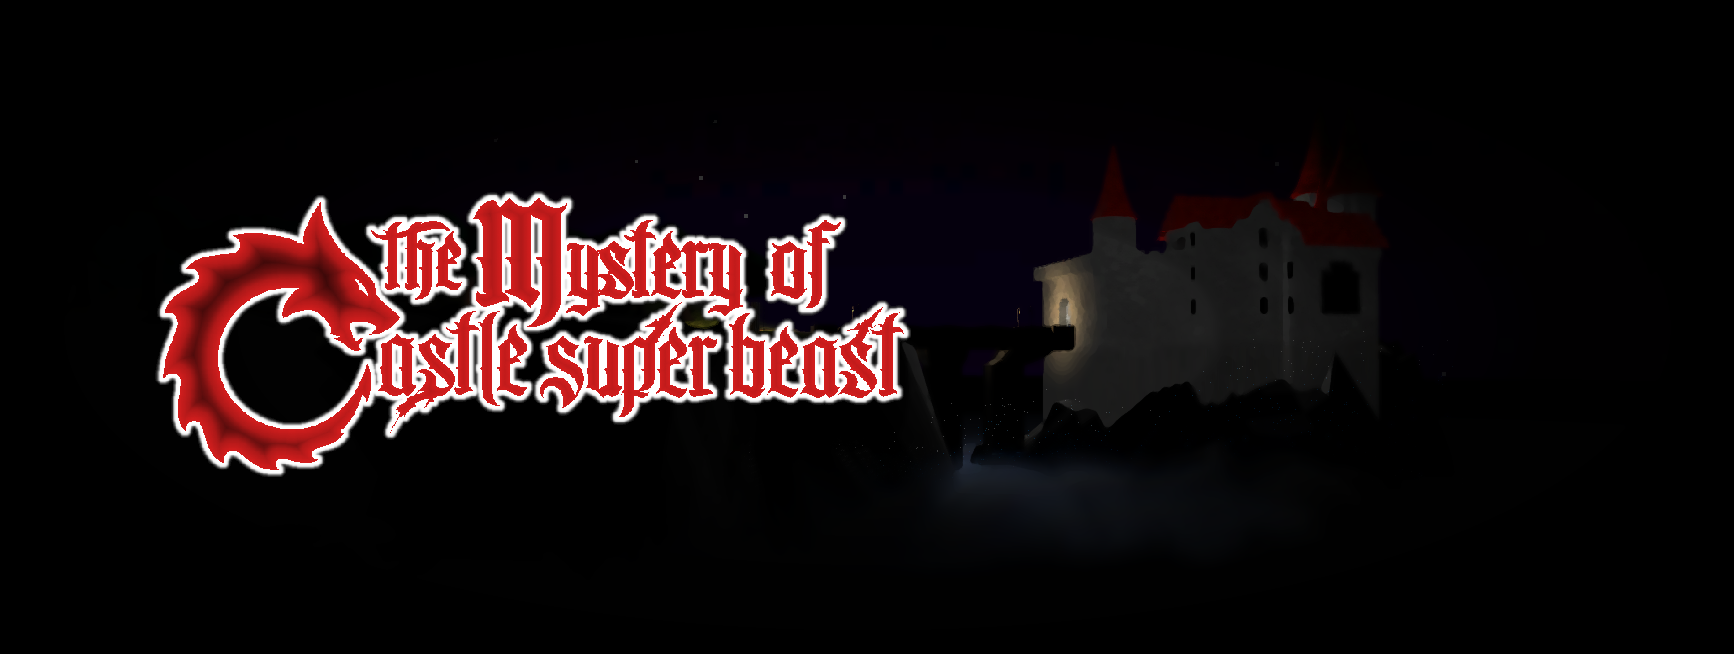 The Mystery of Castle Super Beast